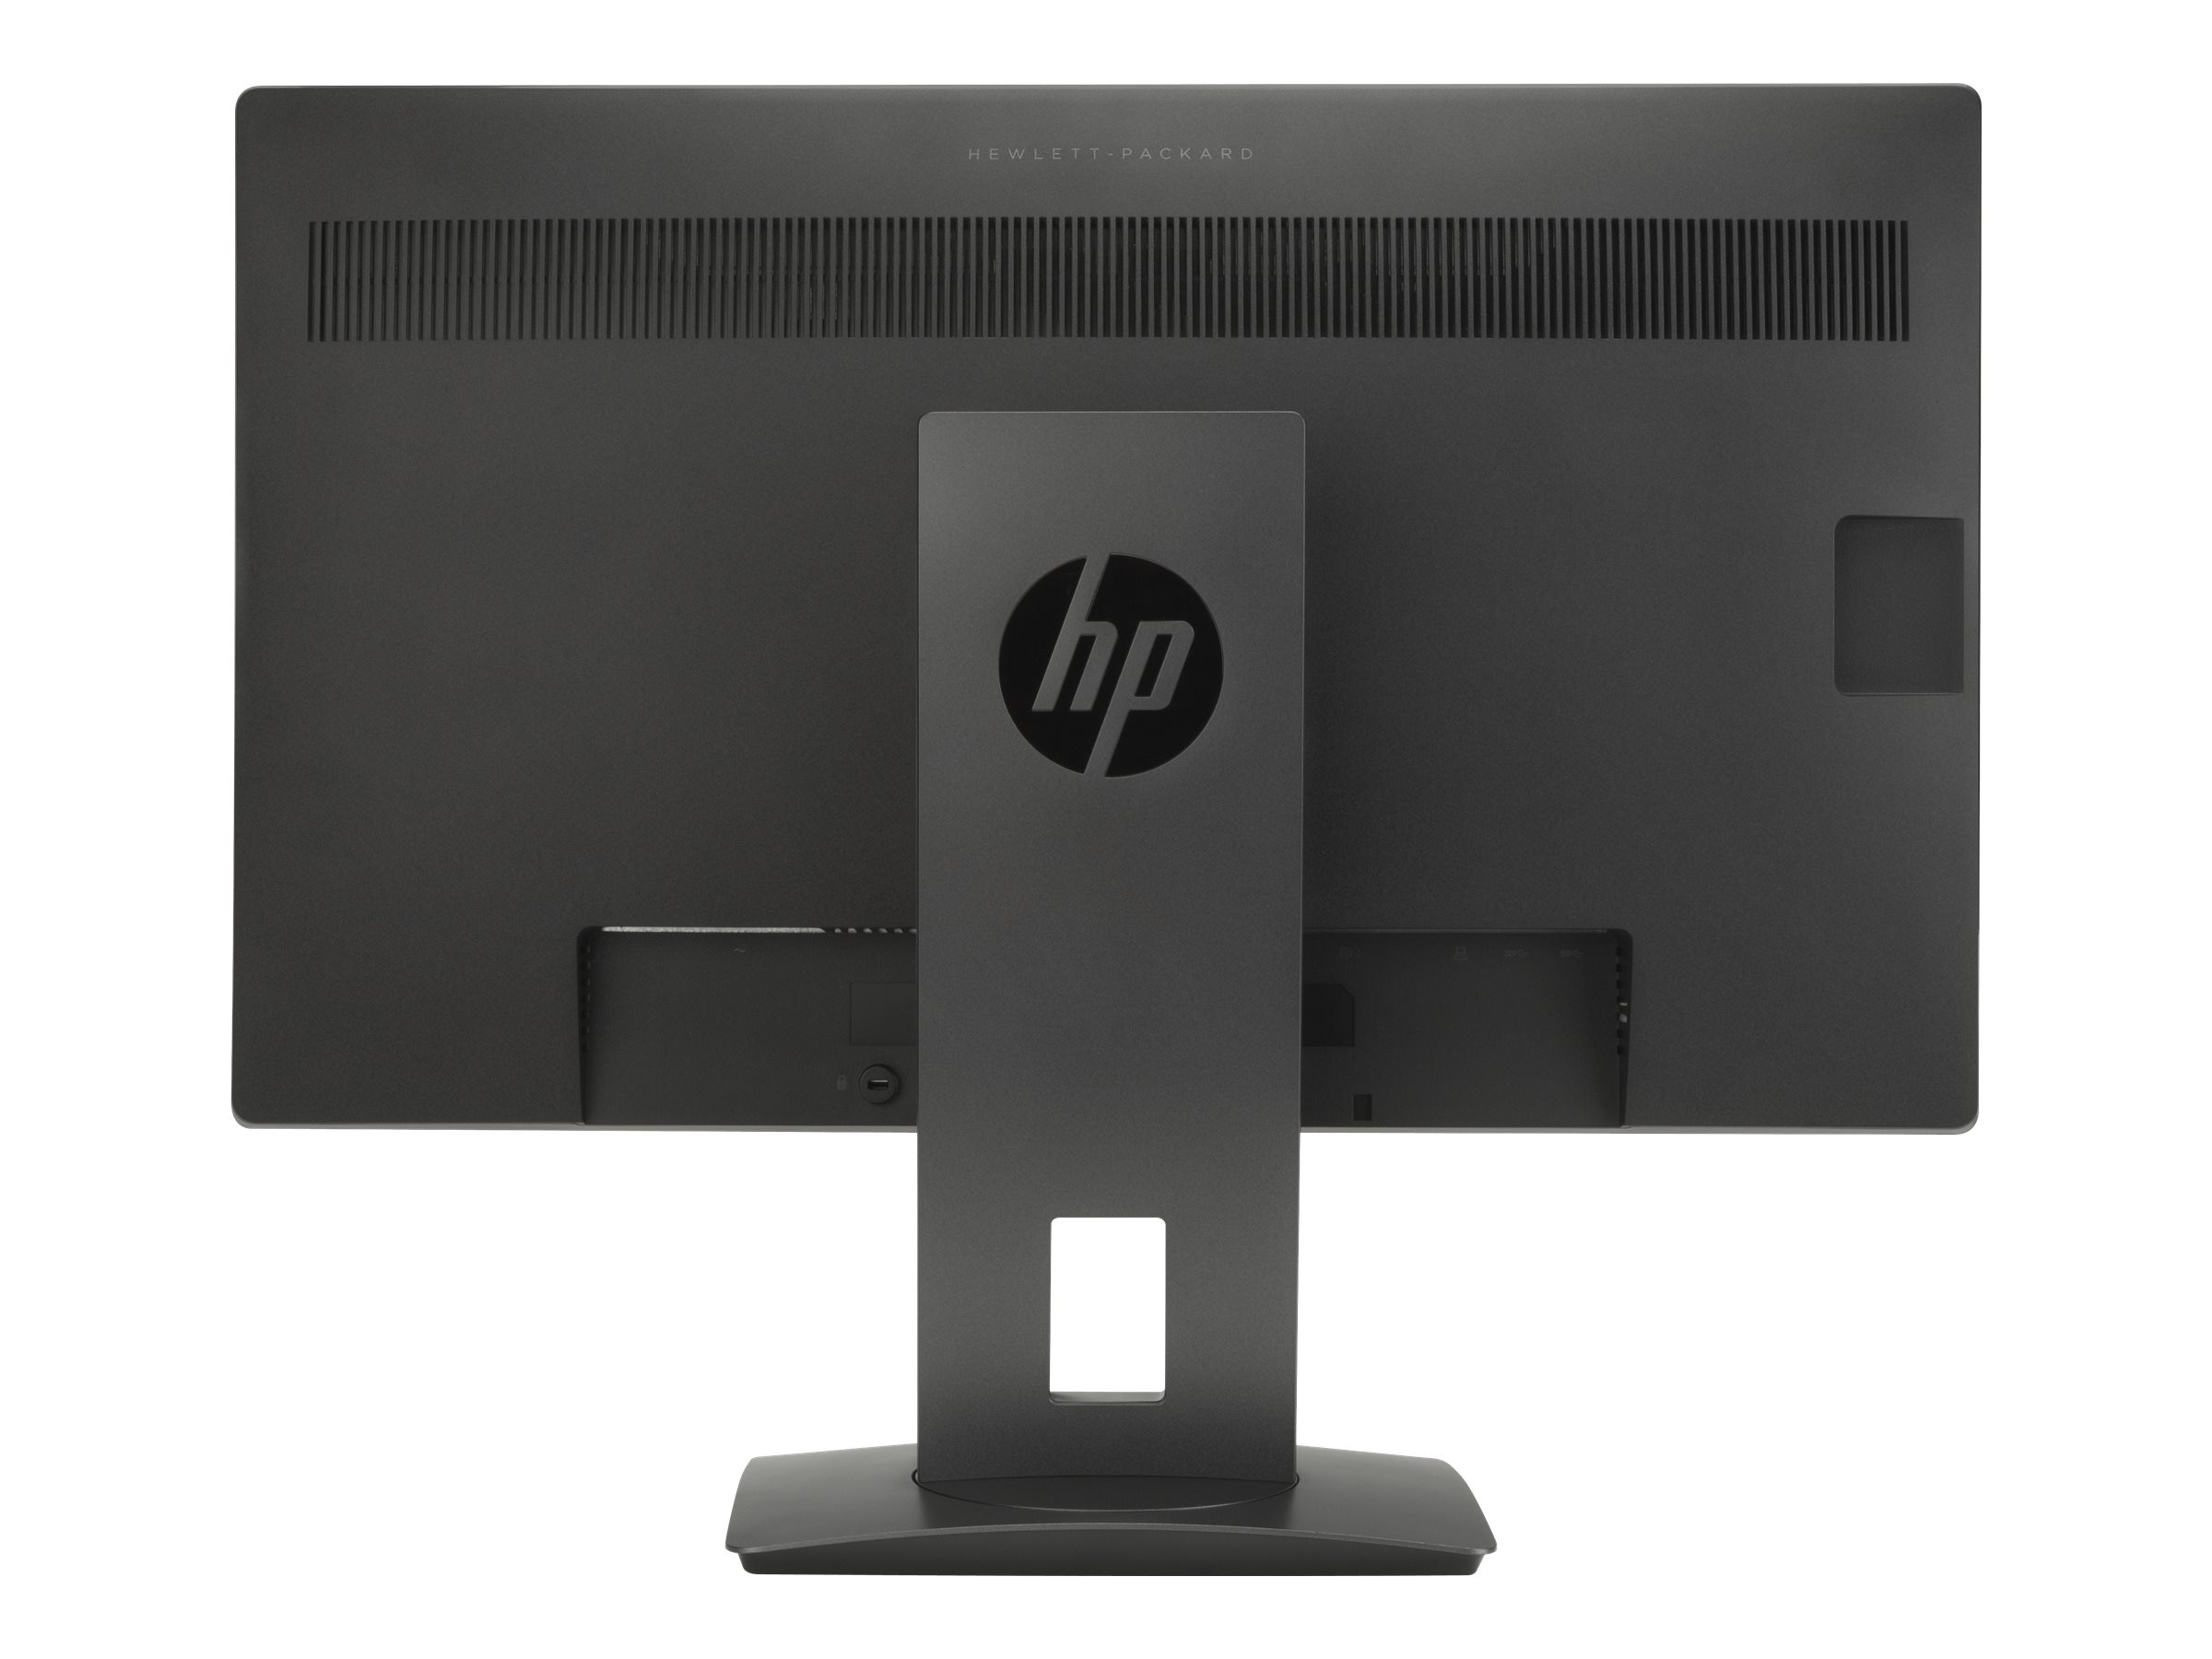 HP Promo 27 Z27q 5K Ultra HD LED-LCD IPS Display, Black, J3G14A8#ABA